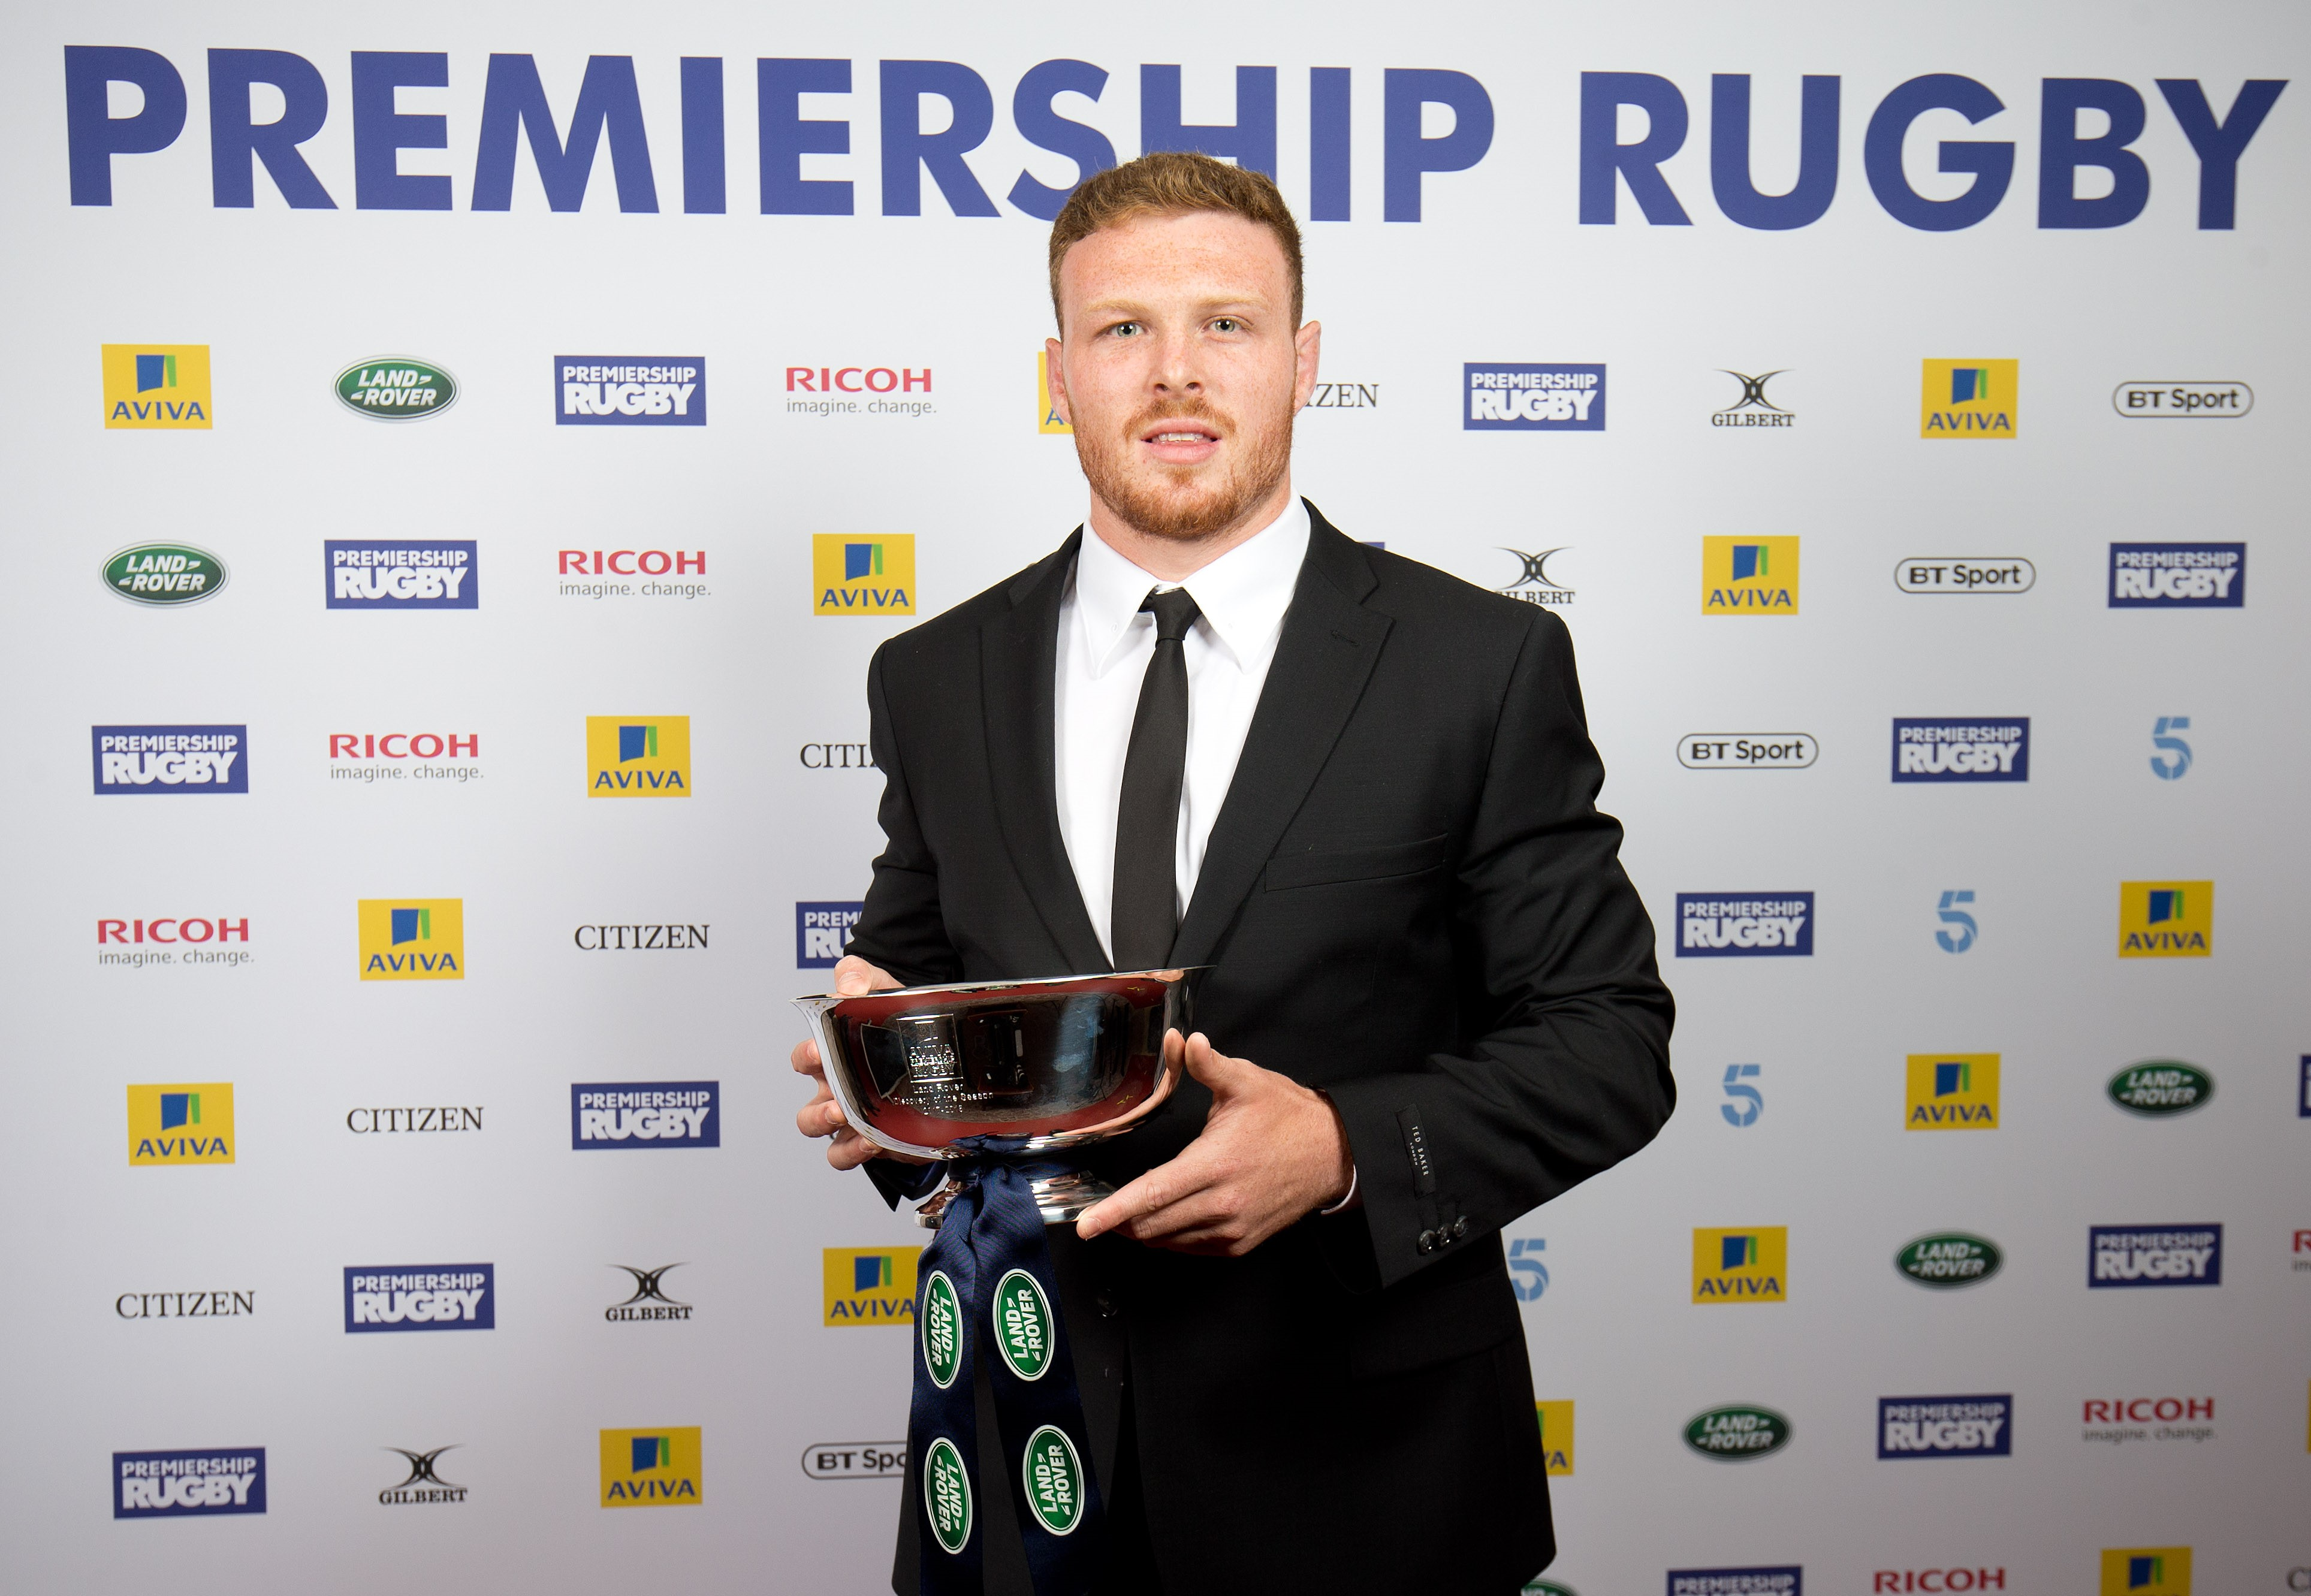 Simmonds Named Land Rover Discovery Of The Season At Aviva Premiership Rugby Awards The Exeter Daily